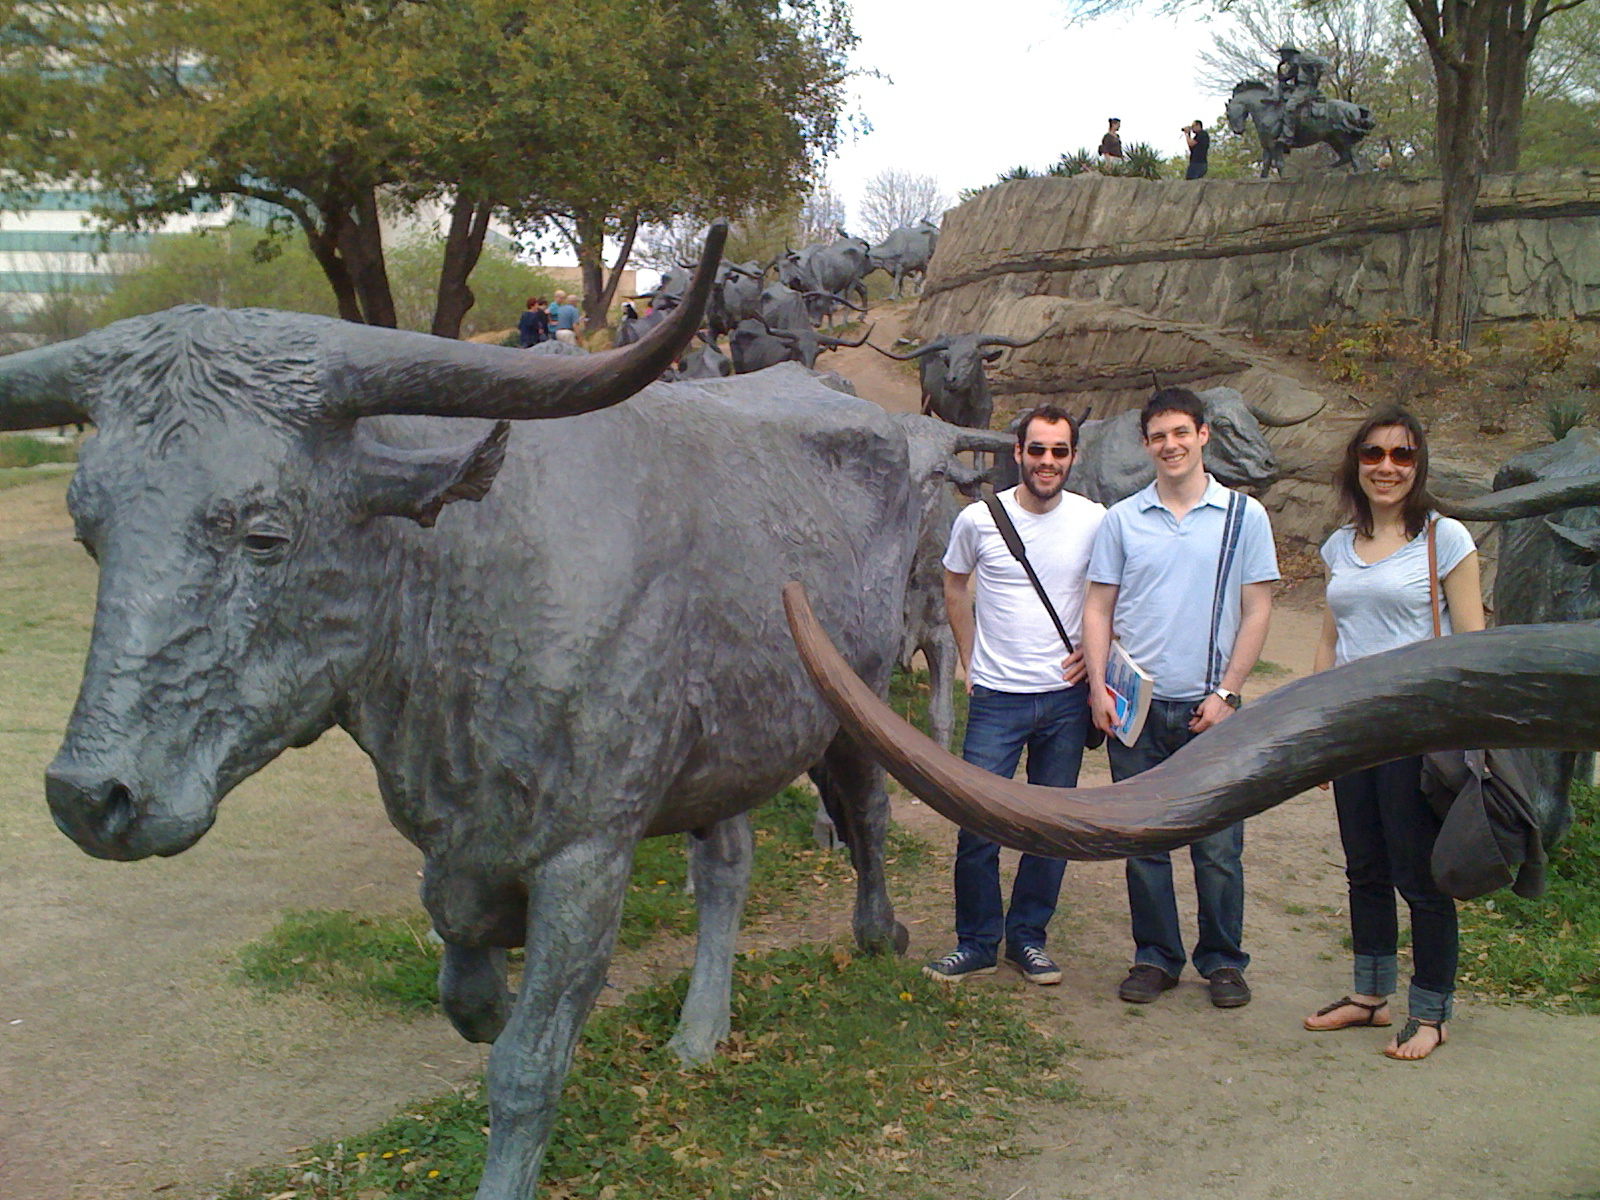 Josh, Rob and Jess, checking out the scenery in Dallas